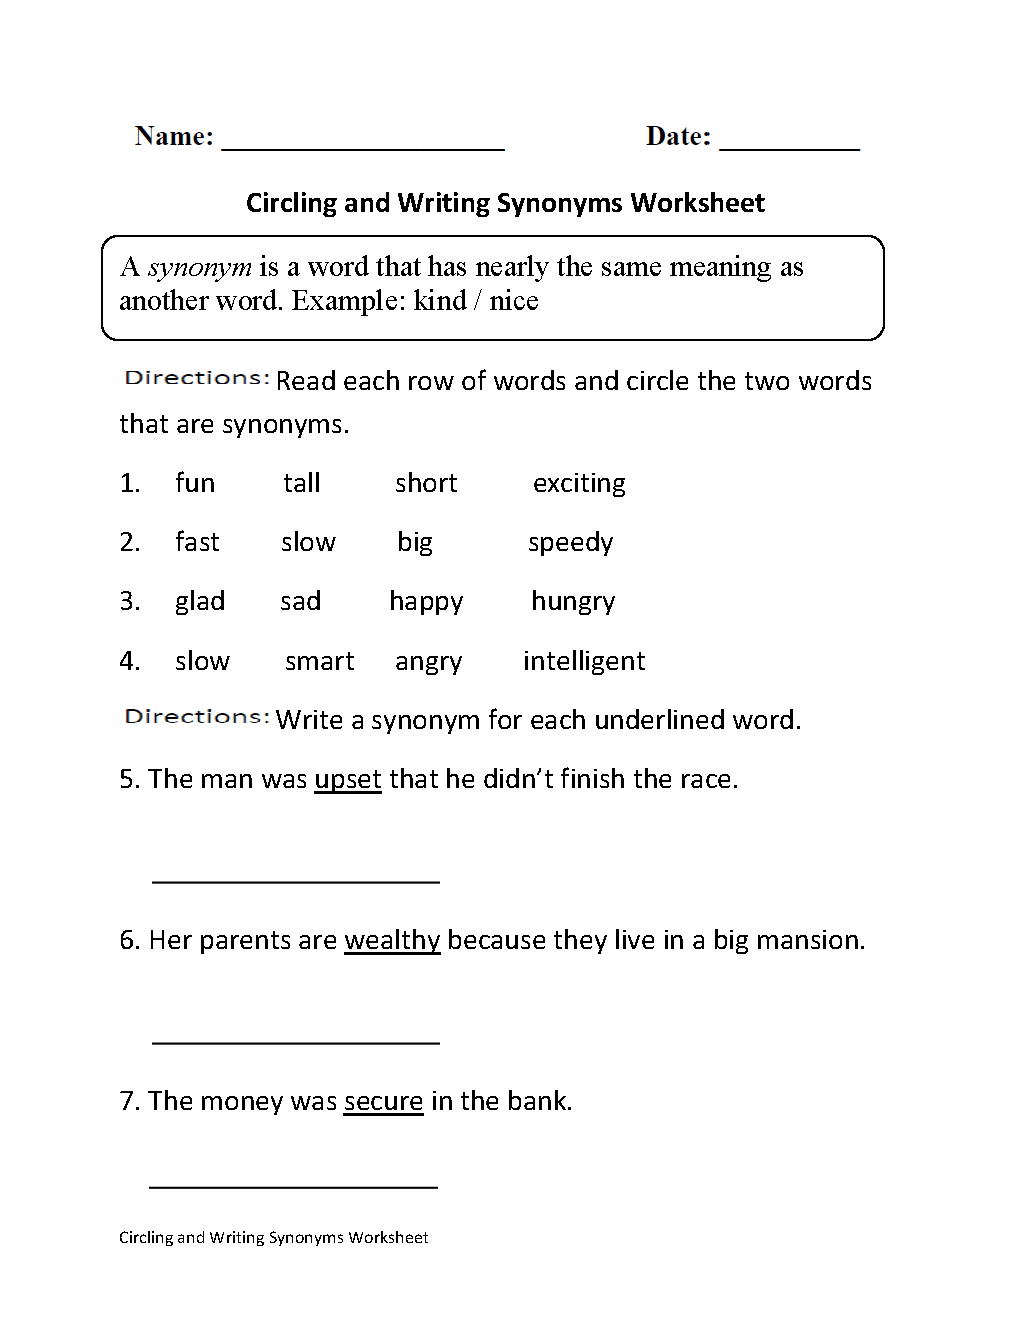 Worksheets Synonyms Worksheet englishlinx com synonyms worksheets worksheet